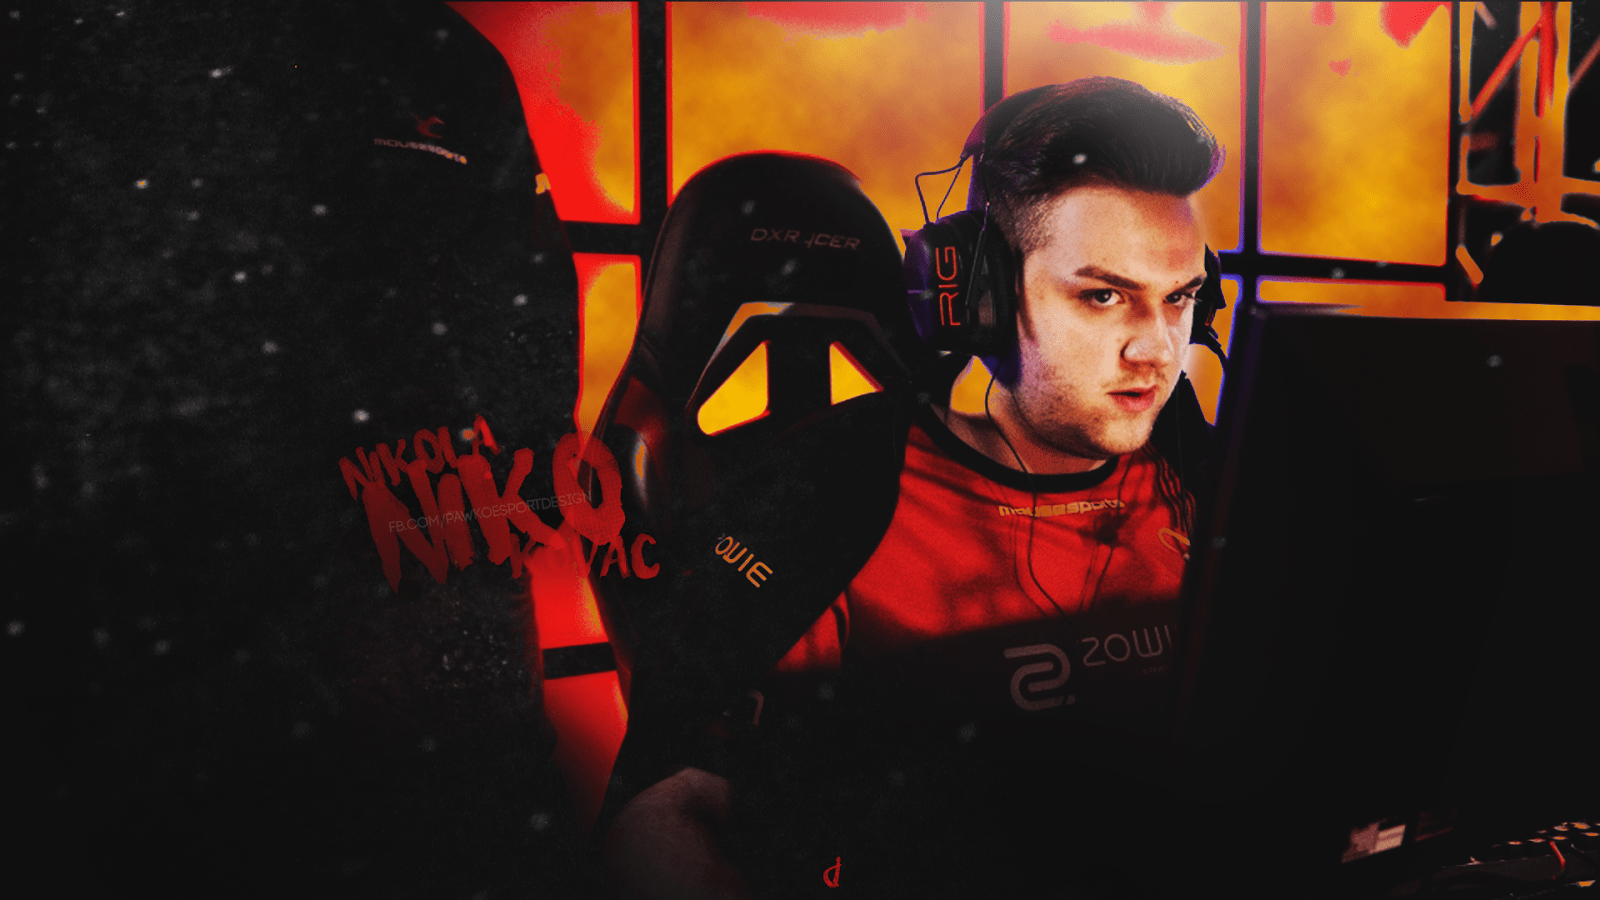 NiKO CS:GO wallpaper 1600x900